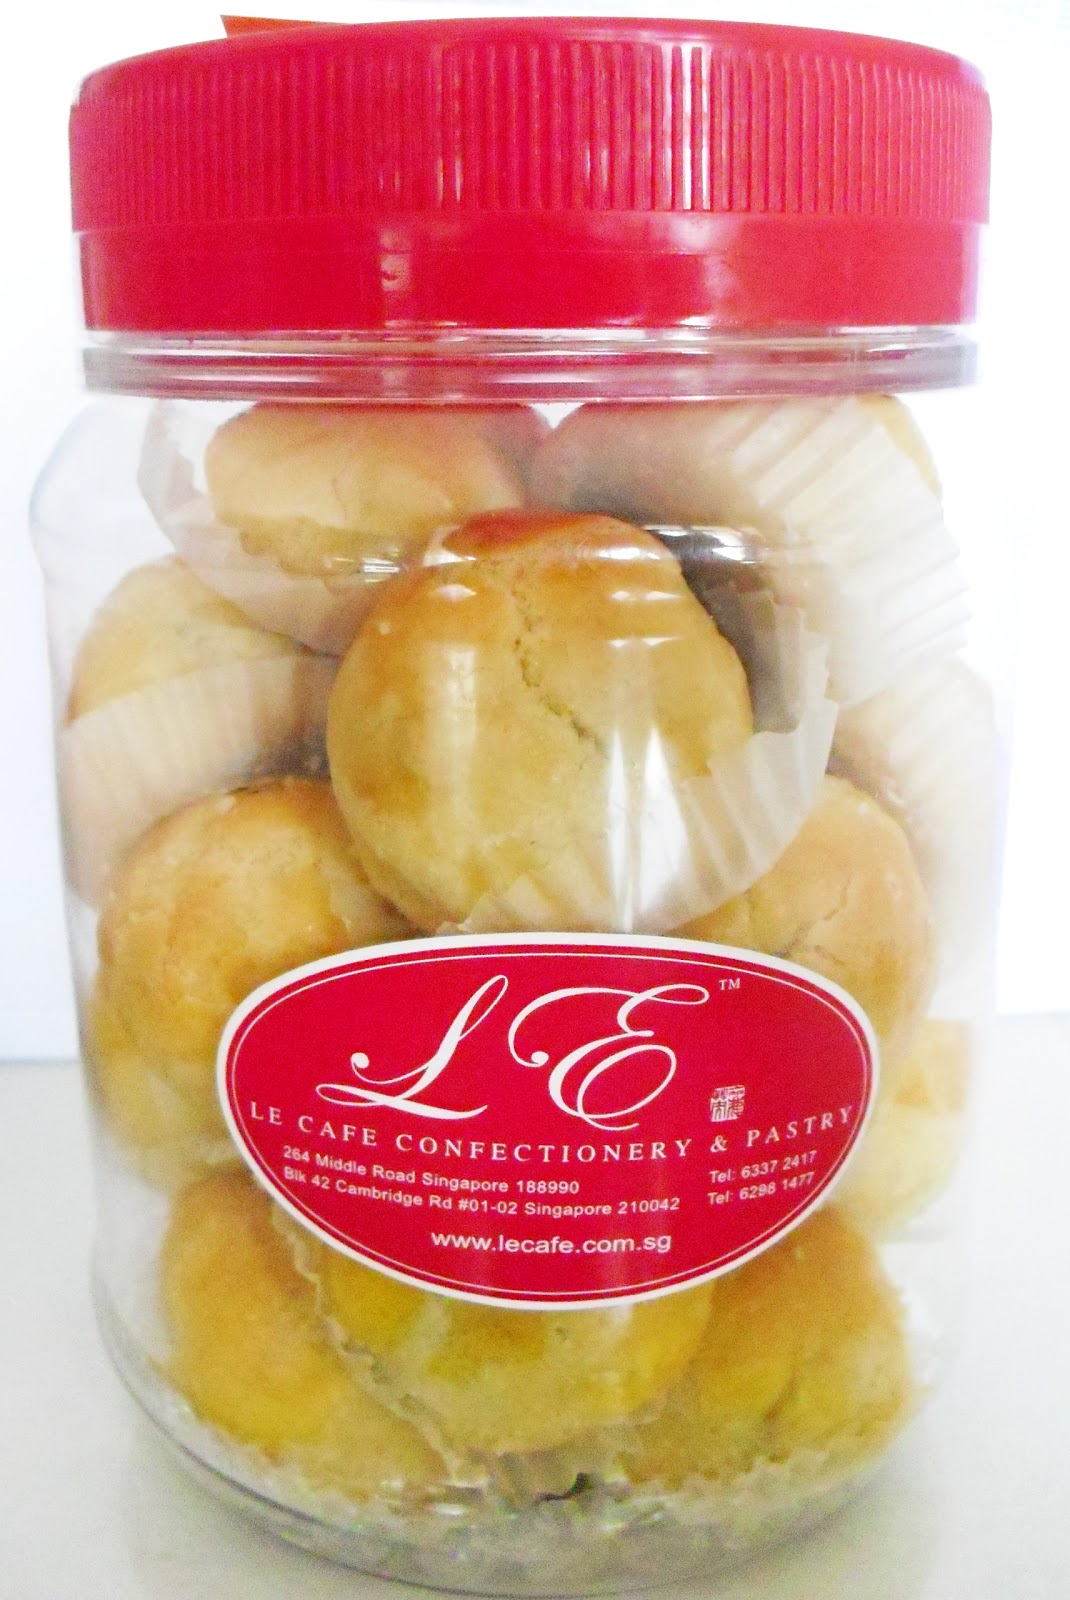 Le Cafe Pineapple Tarts Review